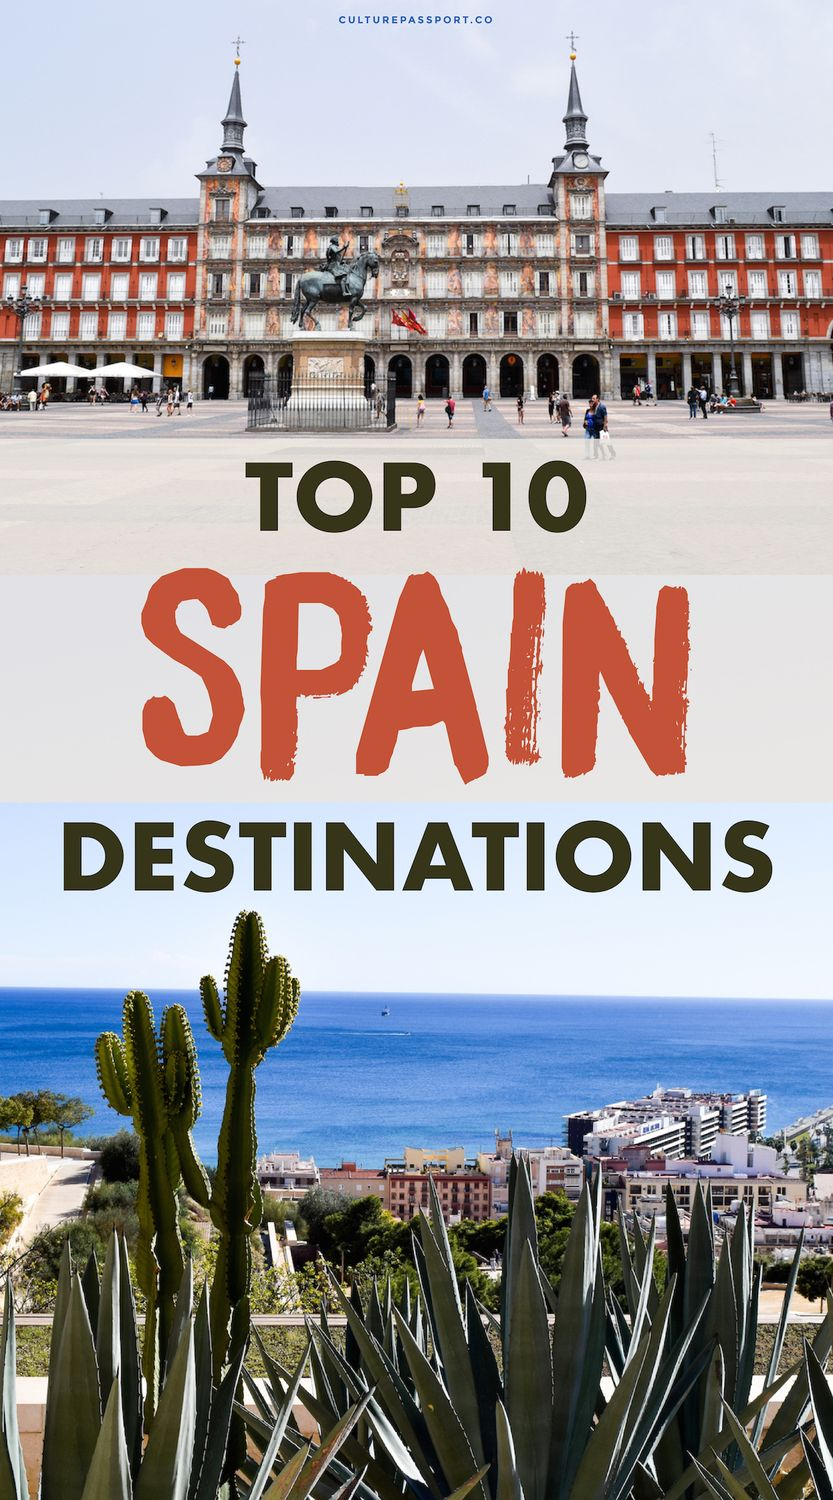 Top 10 Spain Destinations